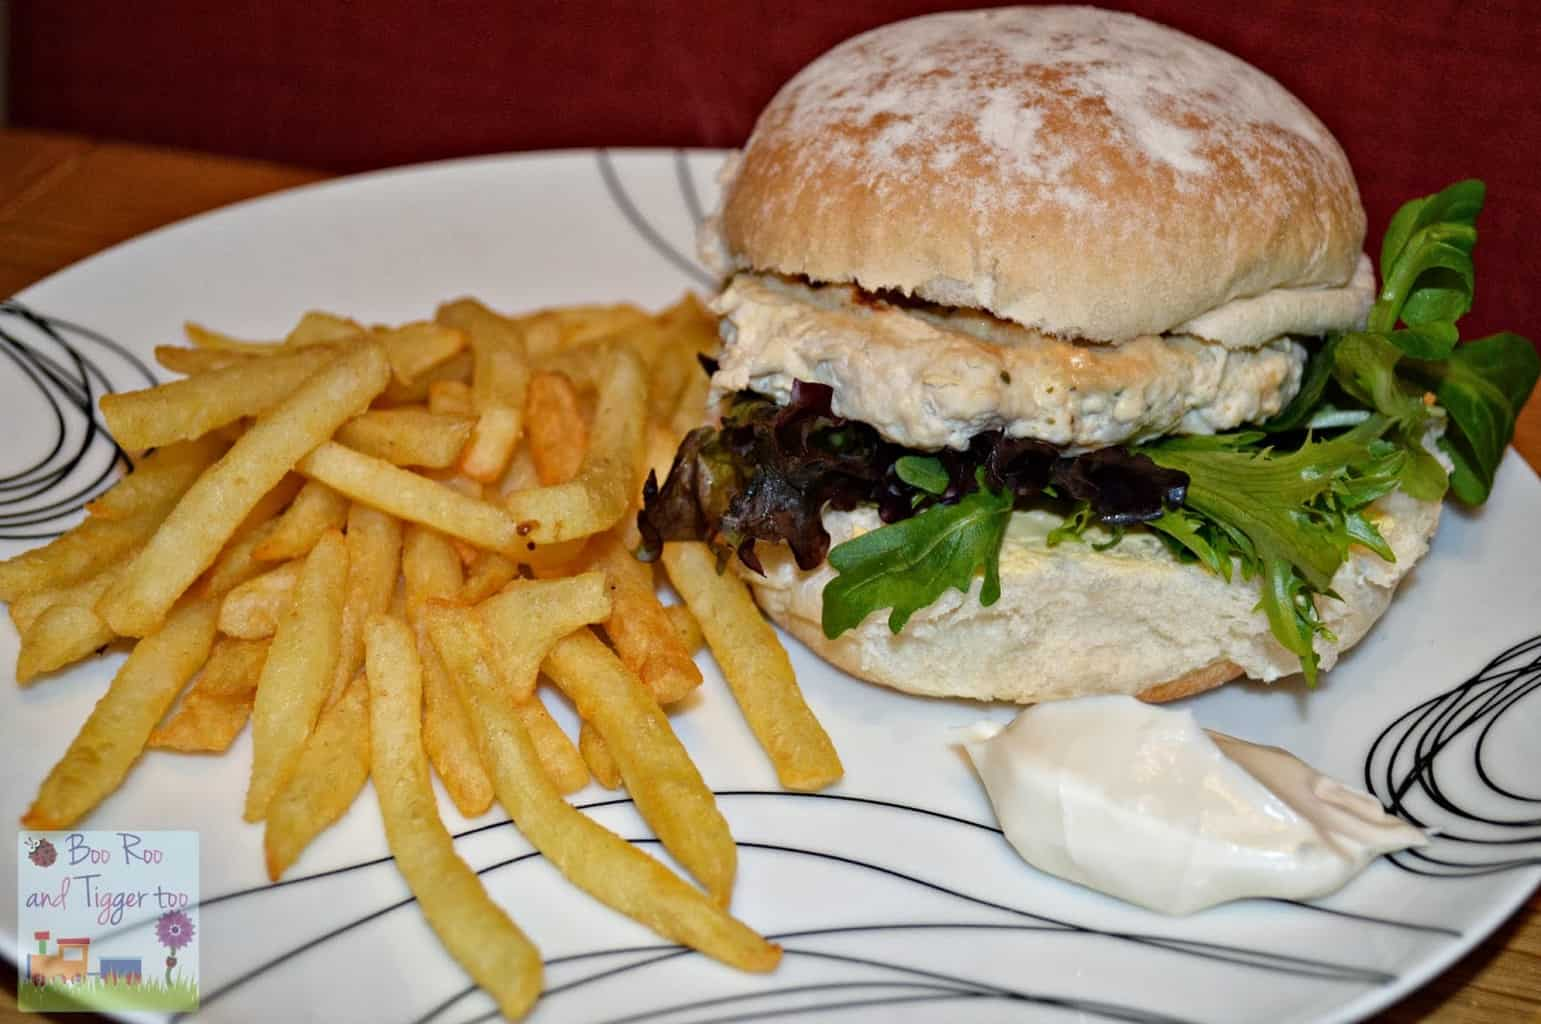 Turkey and Italian Herb Burger with Lemon Mayo and McCain French Fries {Recipe}